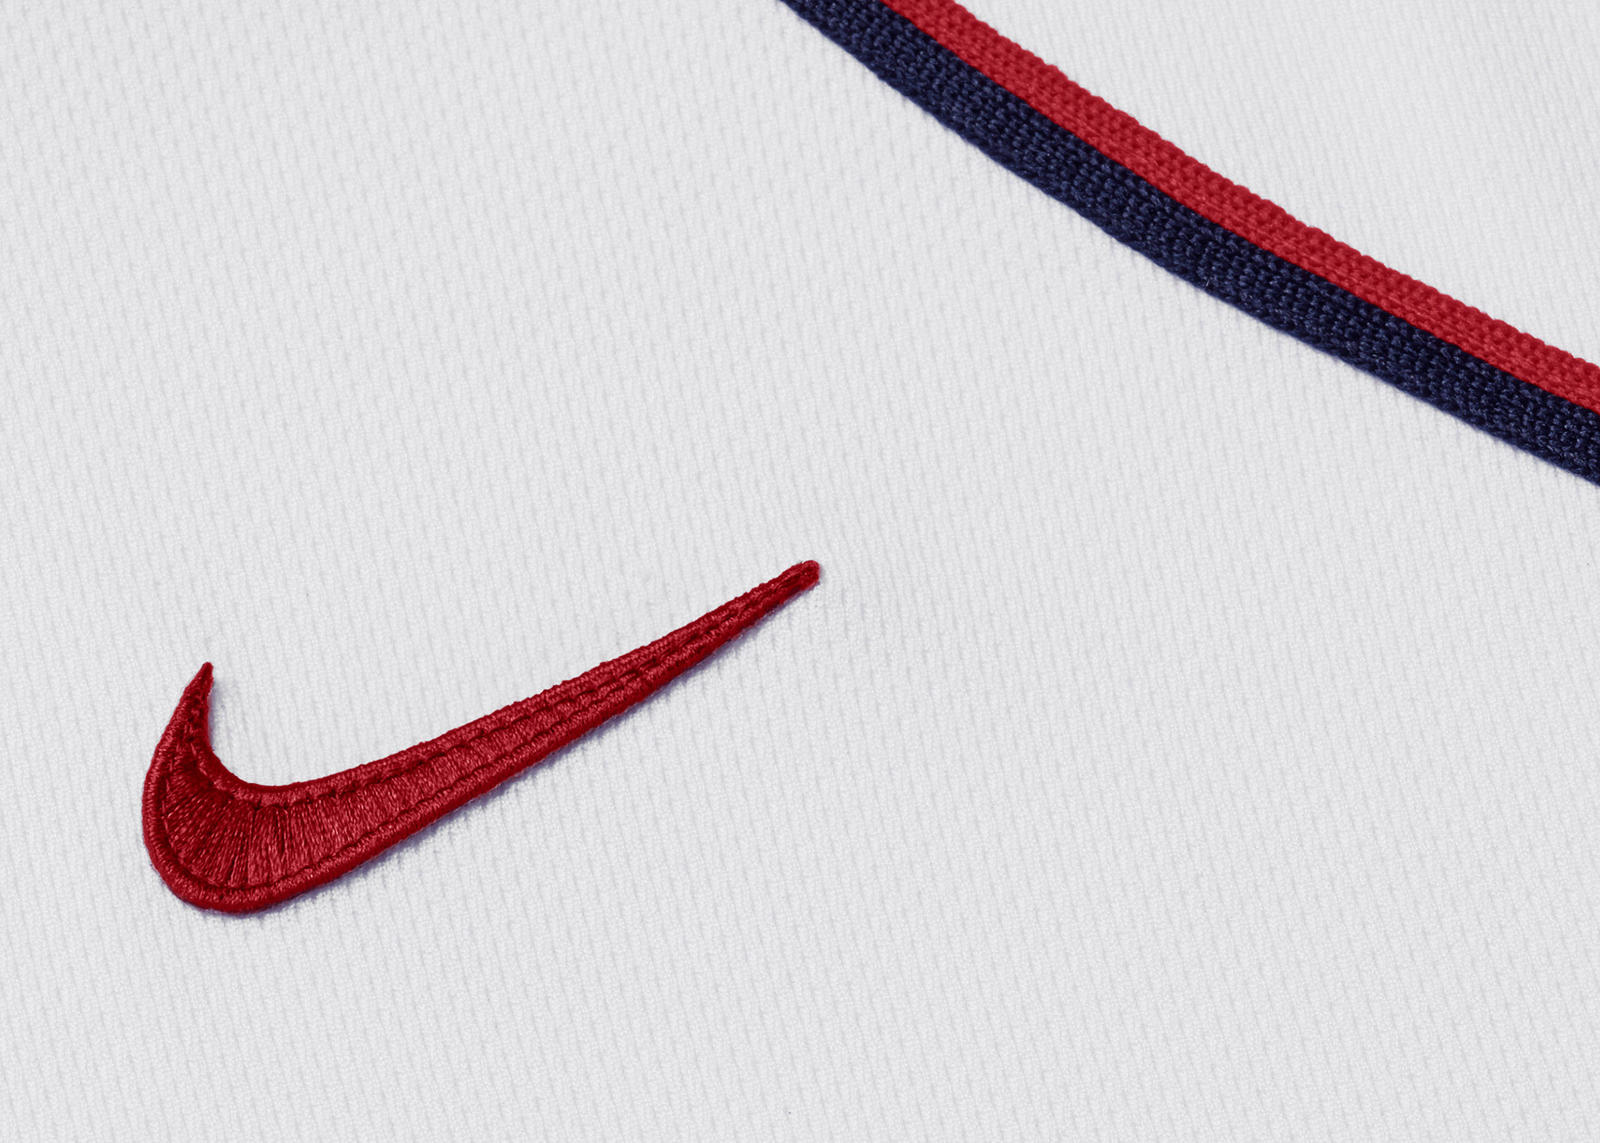 Nike x Major League Baseball Home Uniforms 2020 32